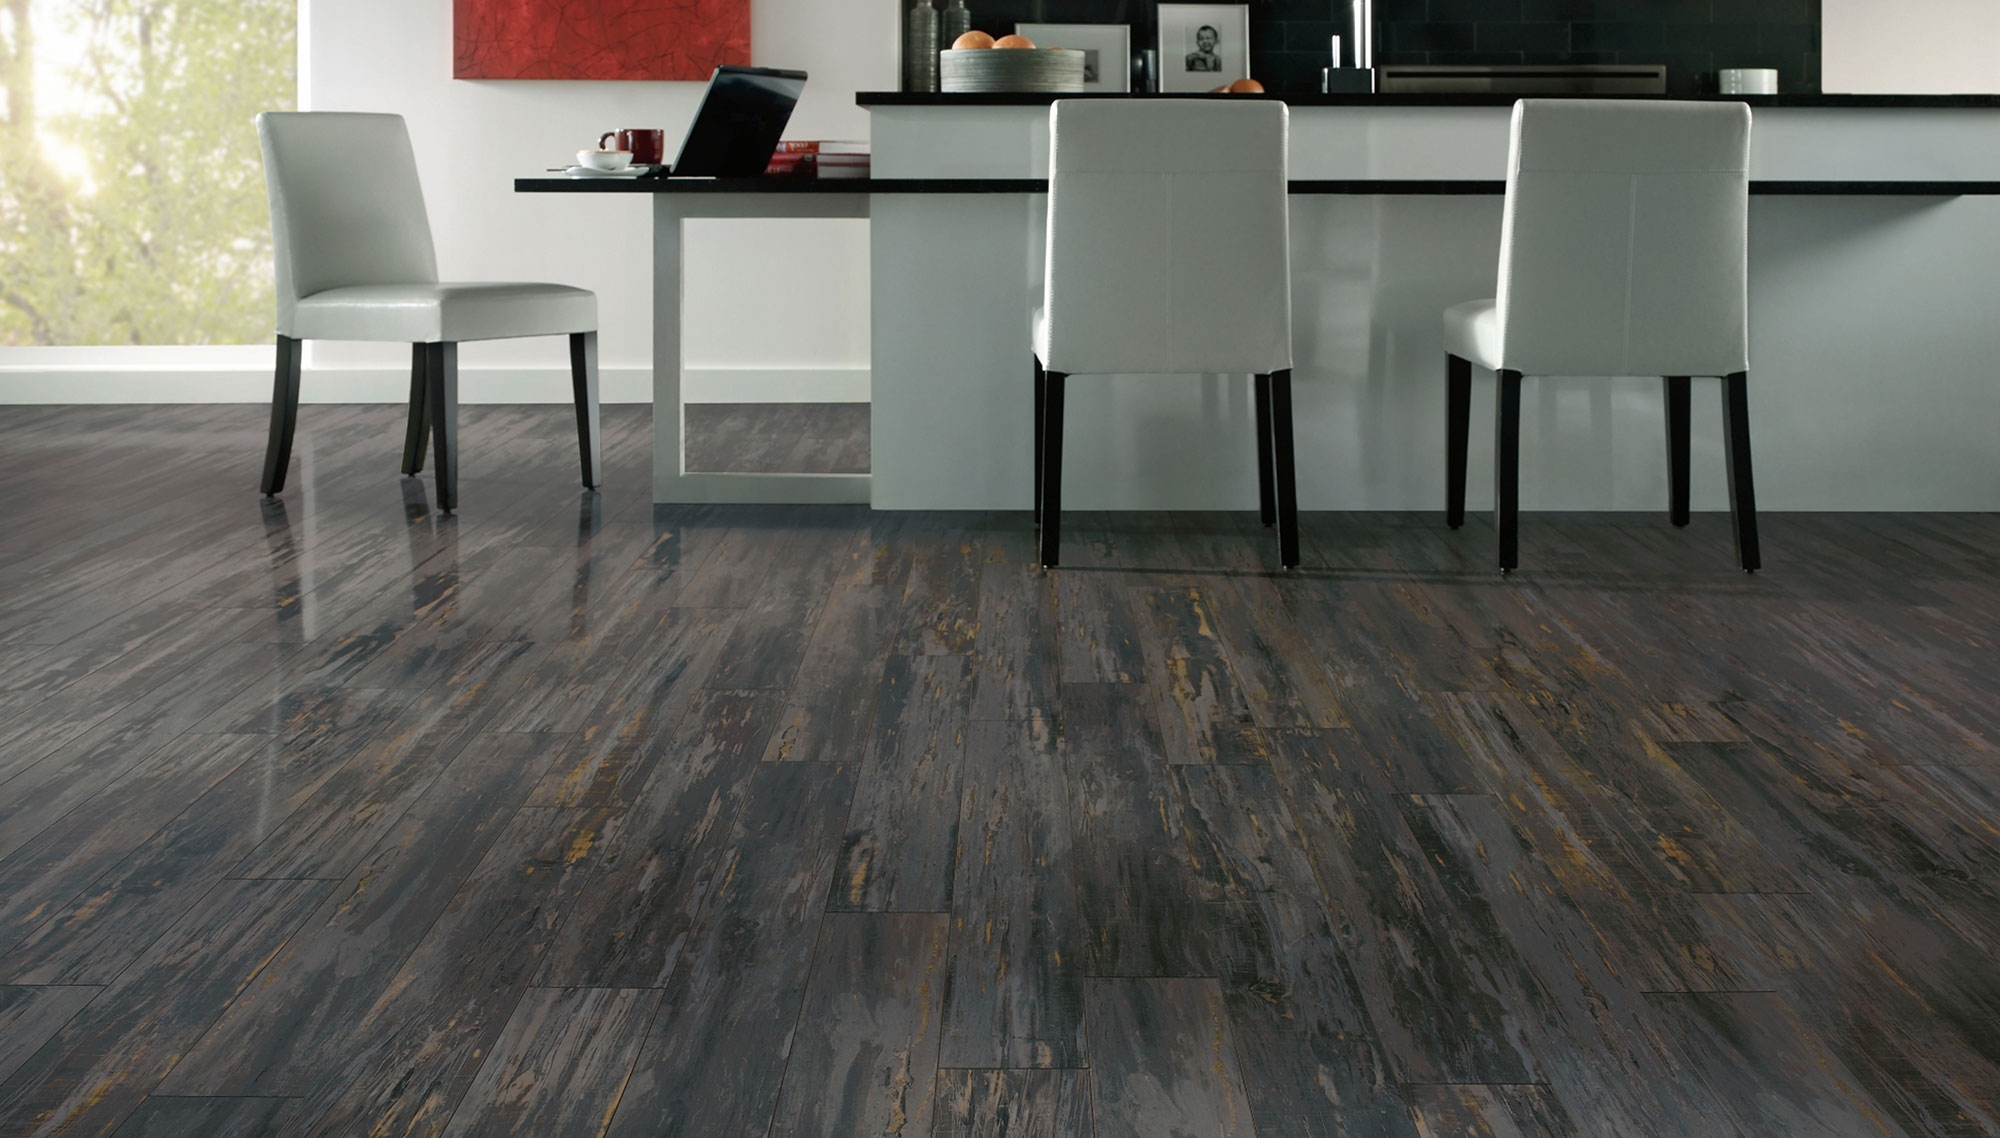 Reclaimed Wood Flooring Tulsahardwood and laminate flooring from bruce